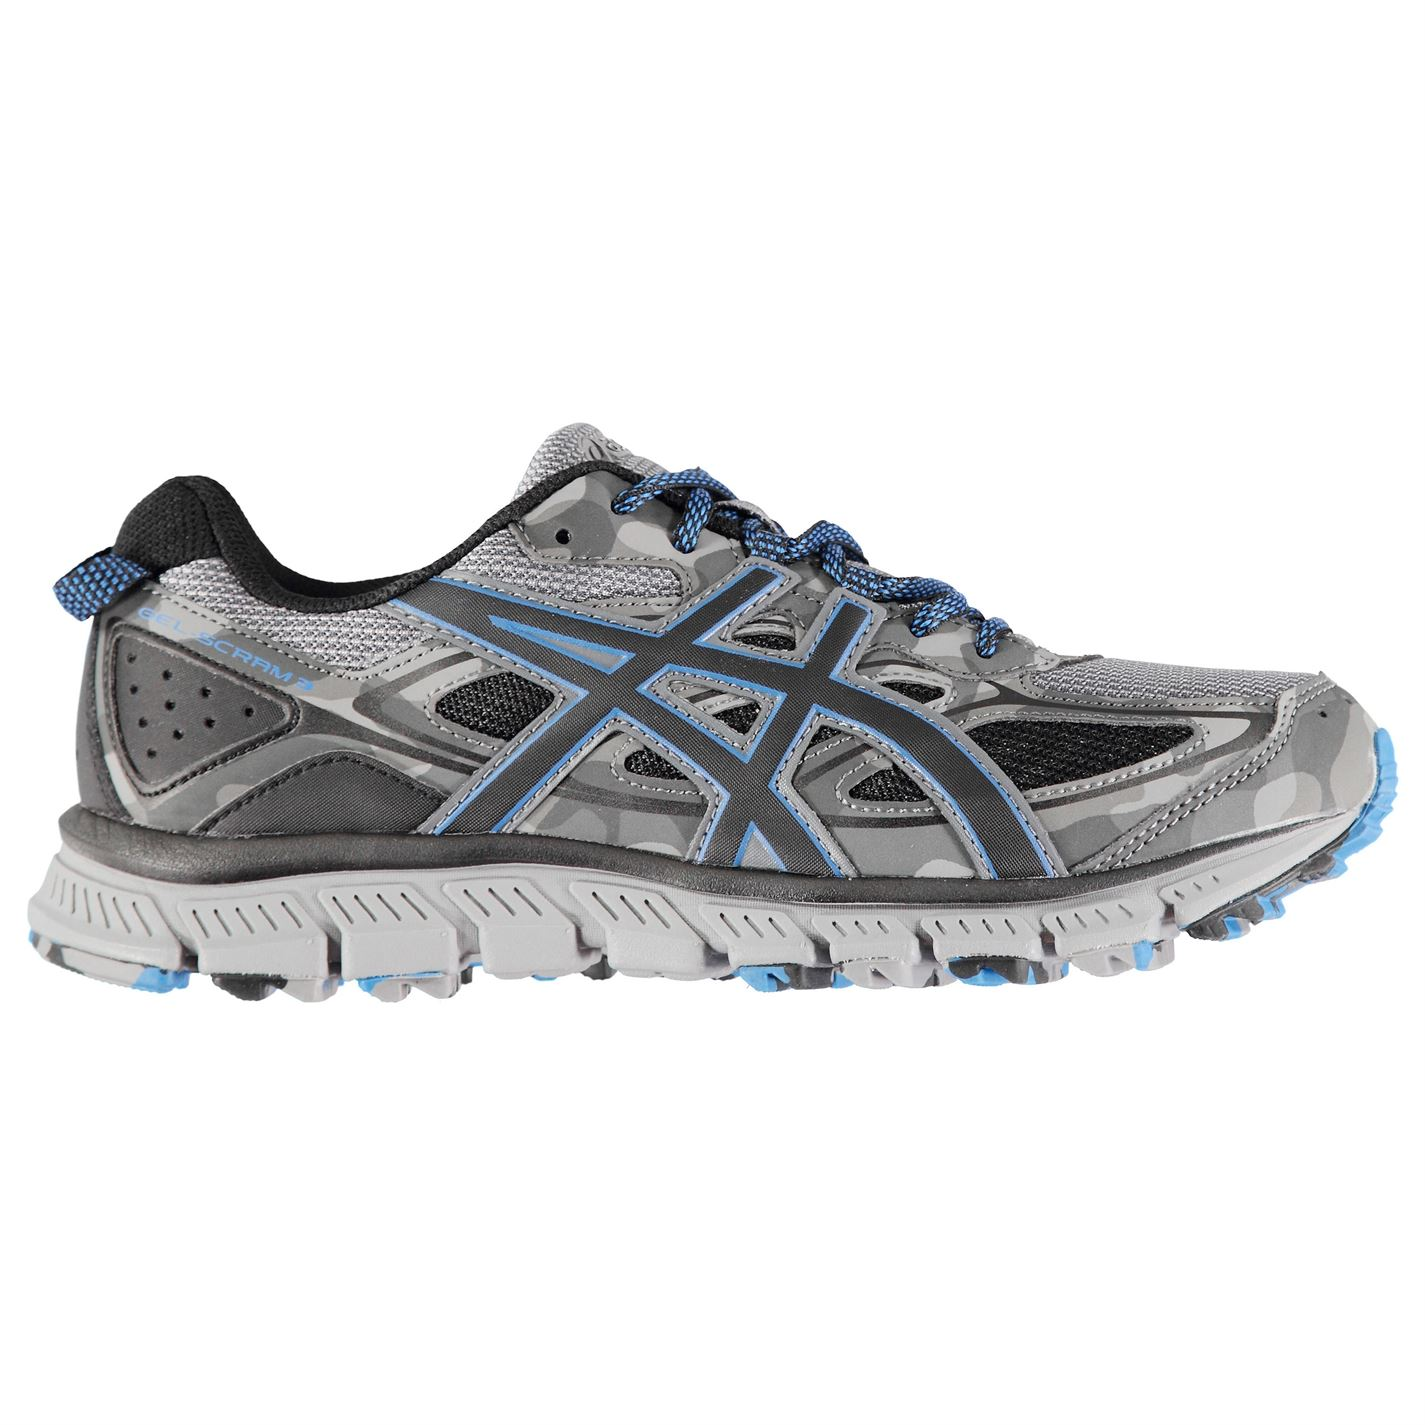 Tenisky Asics Gel Scram 3 Running Shoes Mens - Glami.cz 3cd77fa606